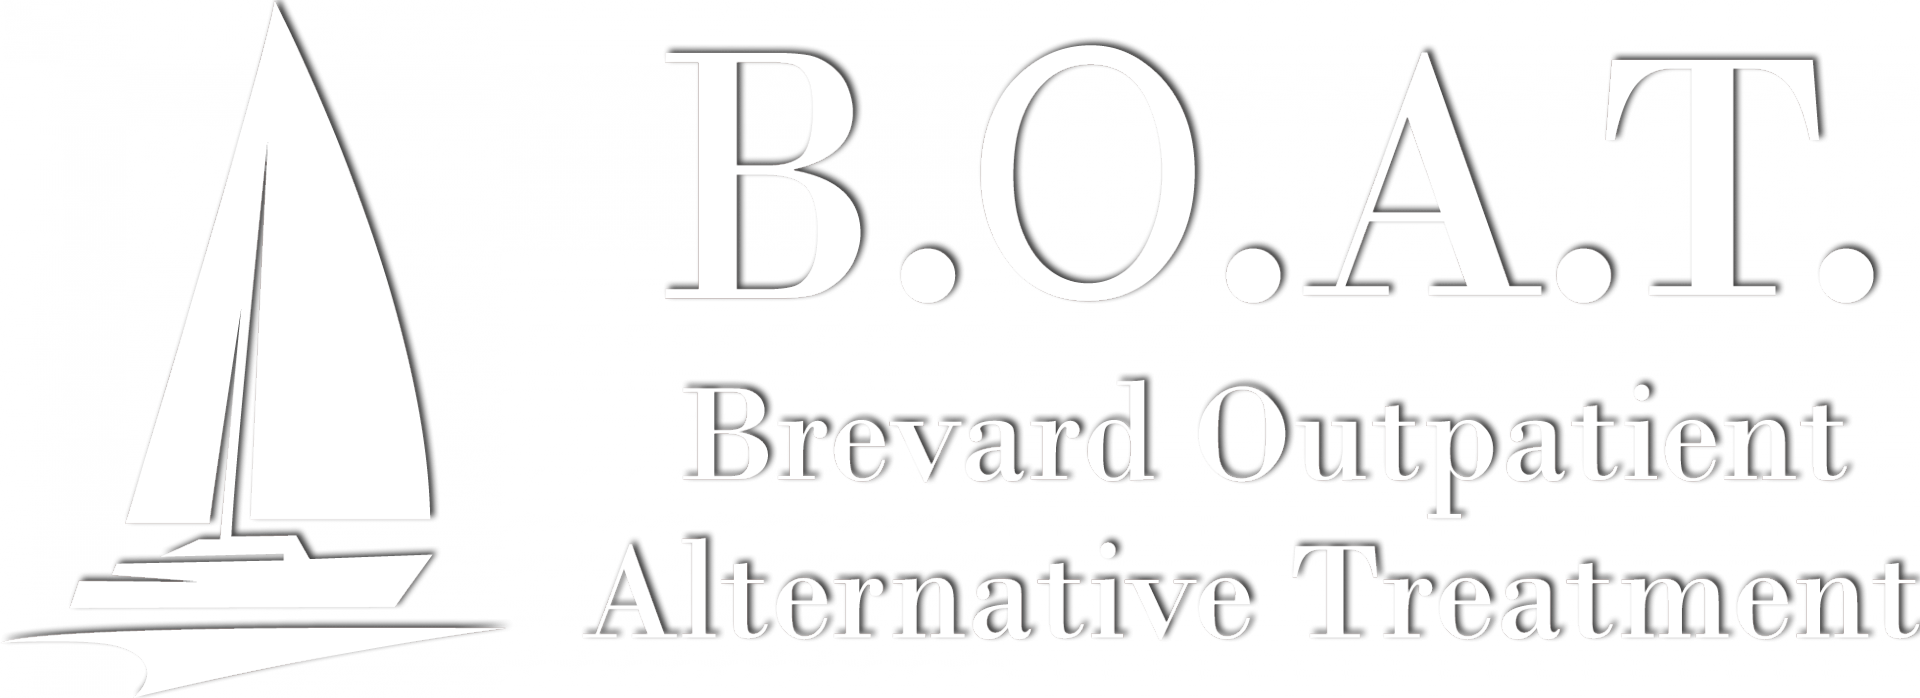 Brevard Outpatient Alternative Treatment